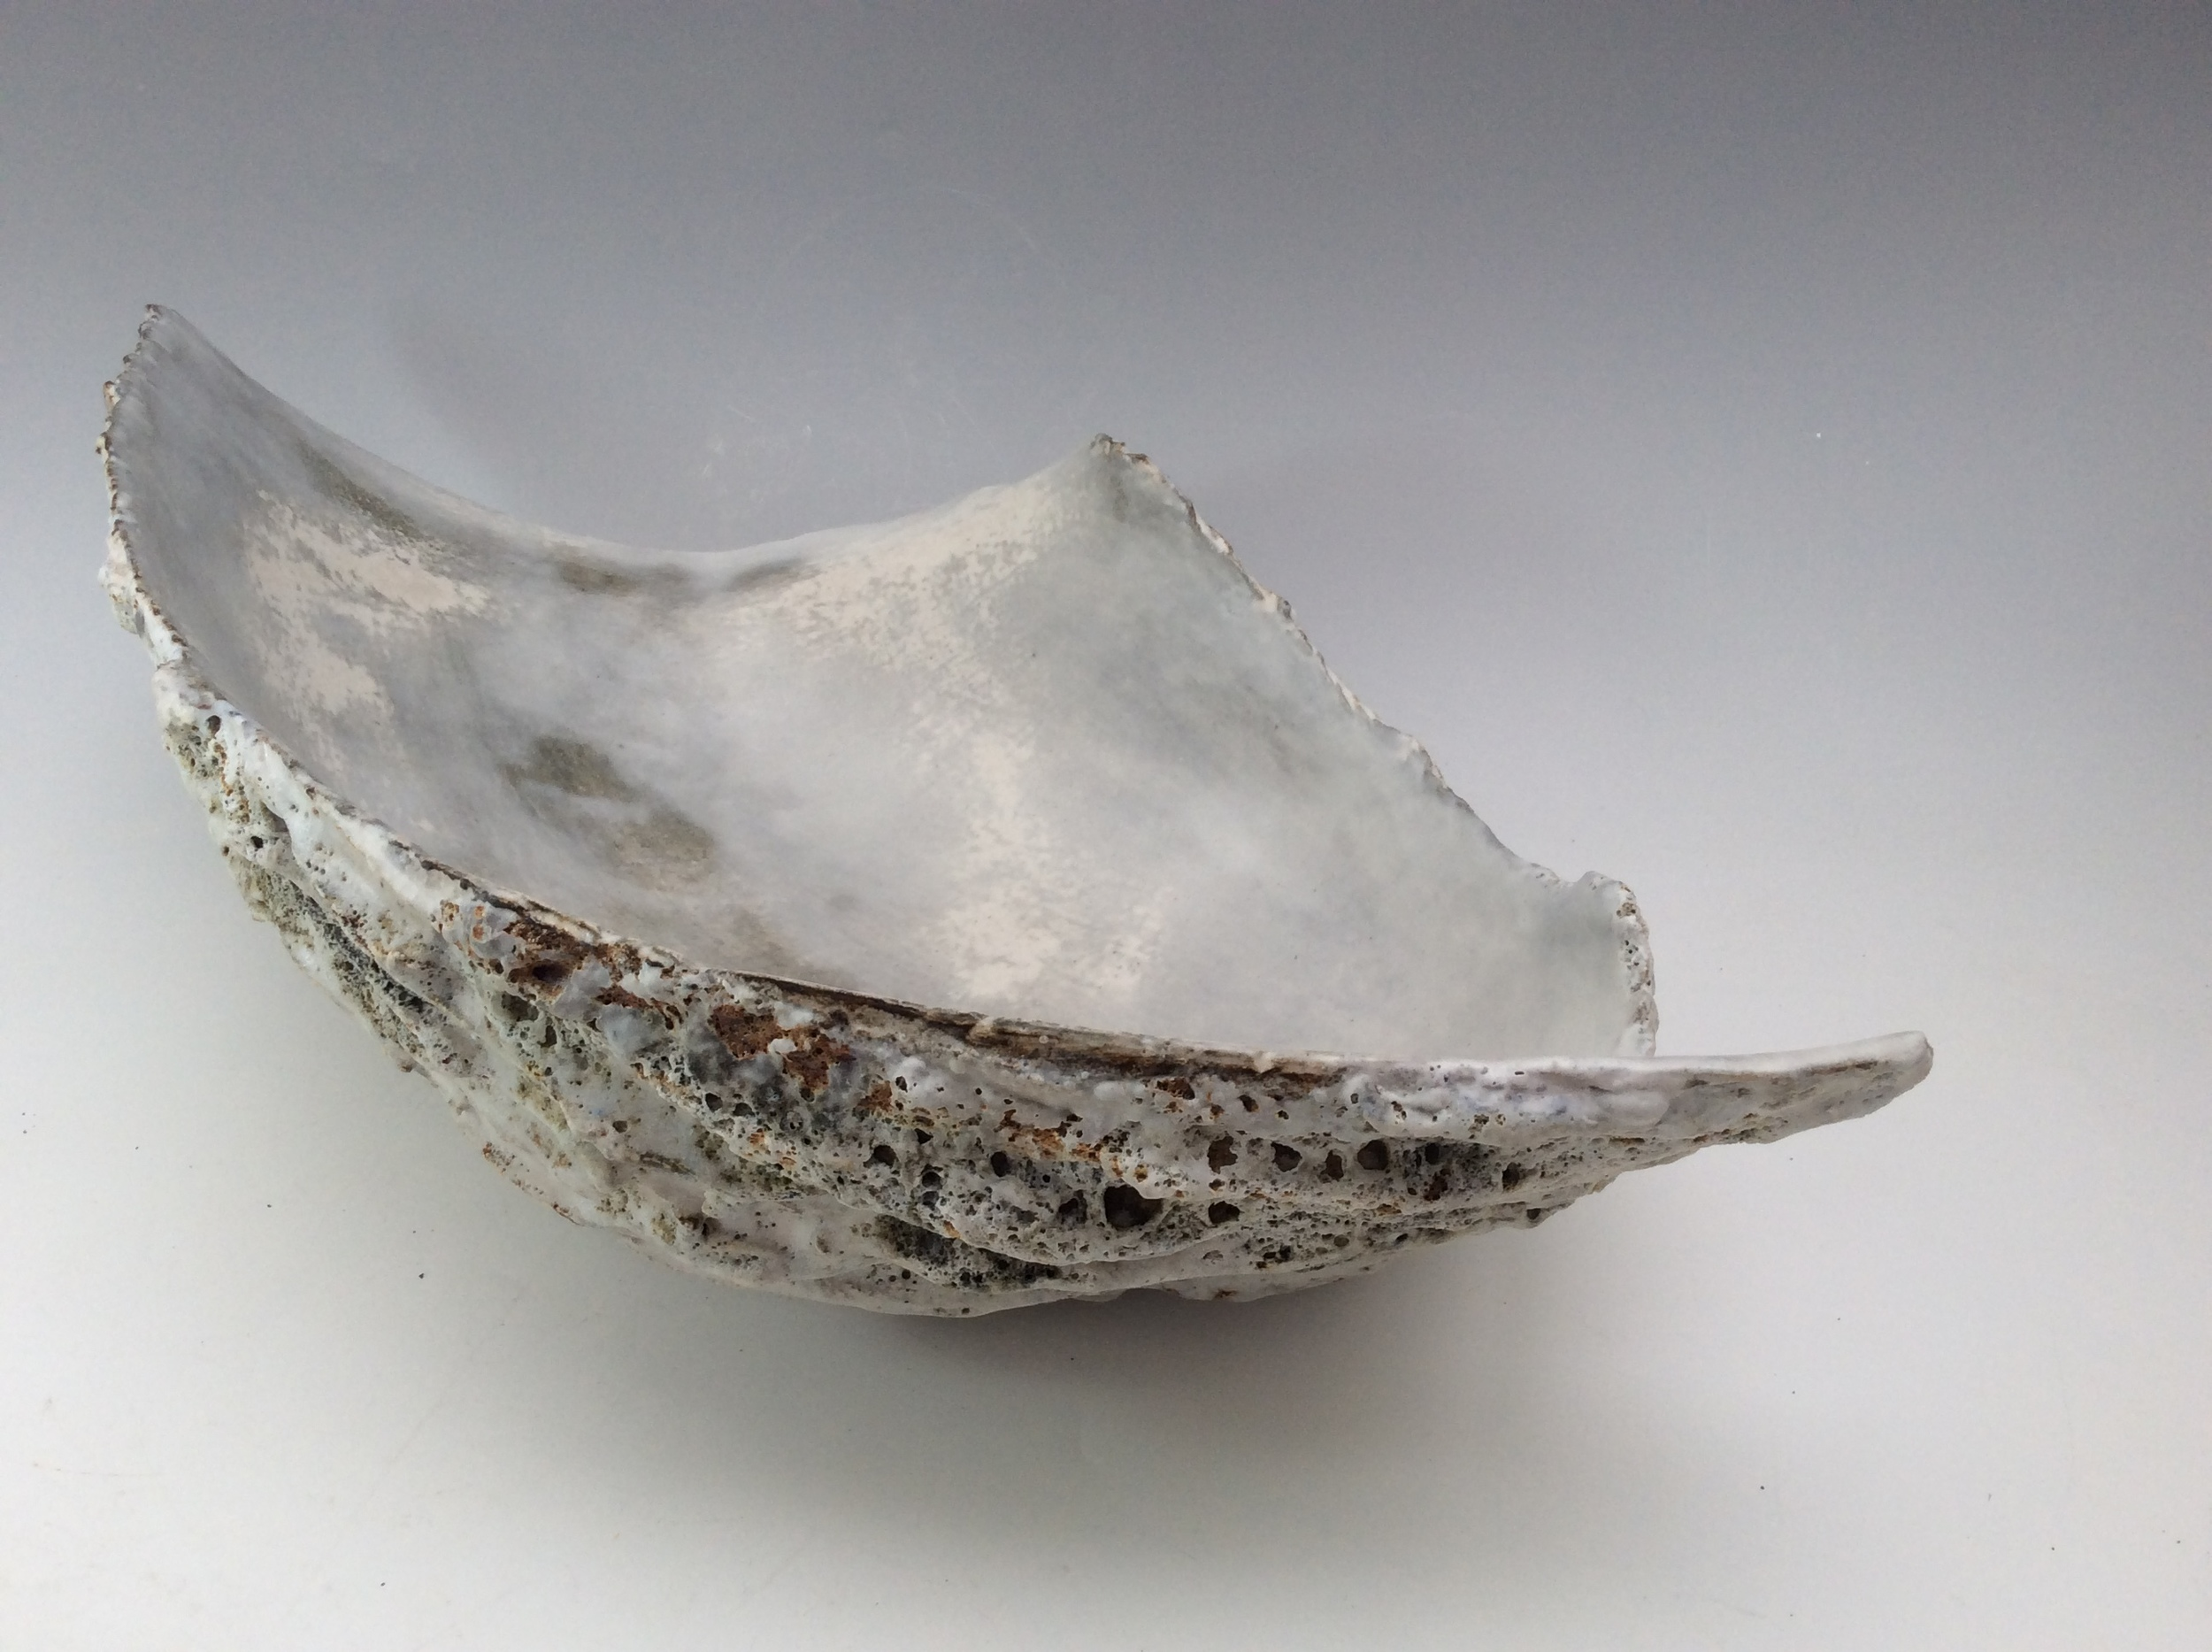 Adela Powell Long Vessel Stoneware -fired to 1270degrees various slips, oxides and glazes. S O L D